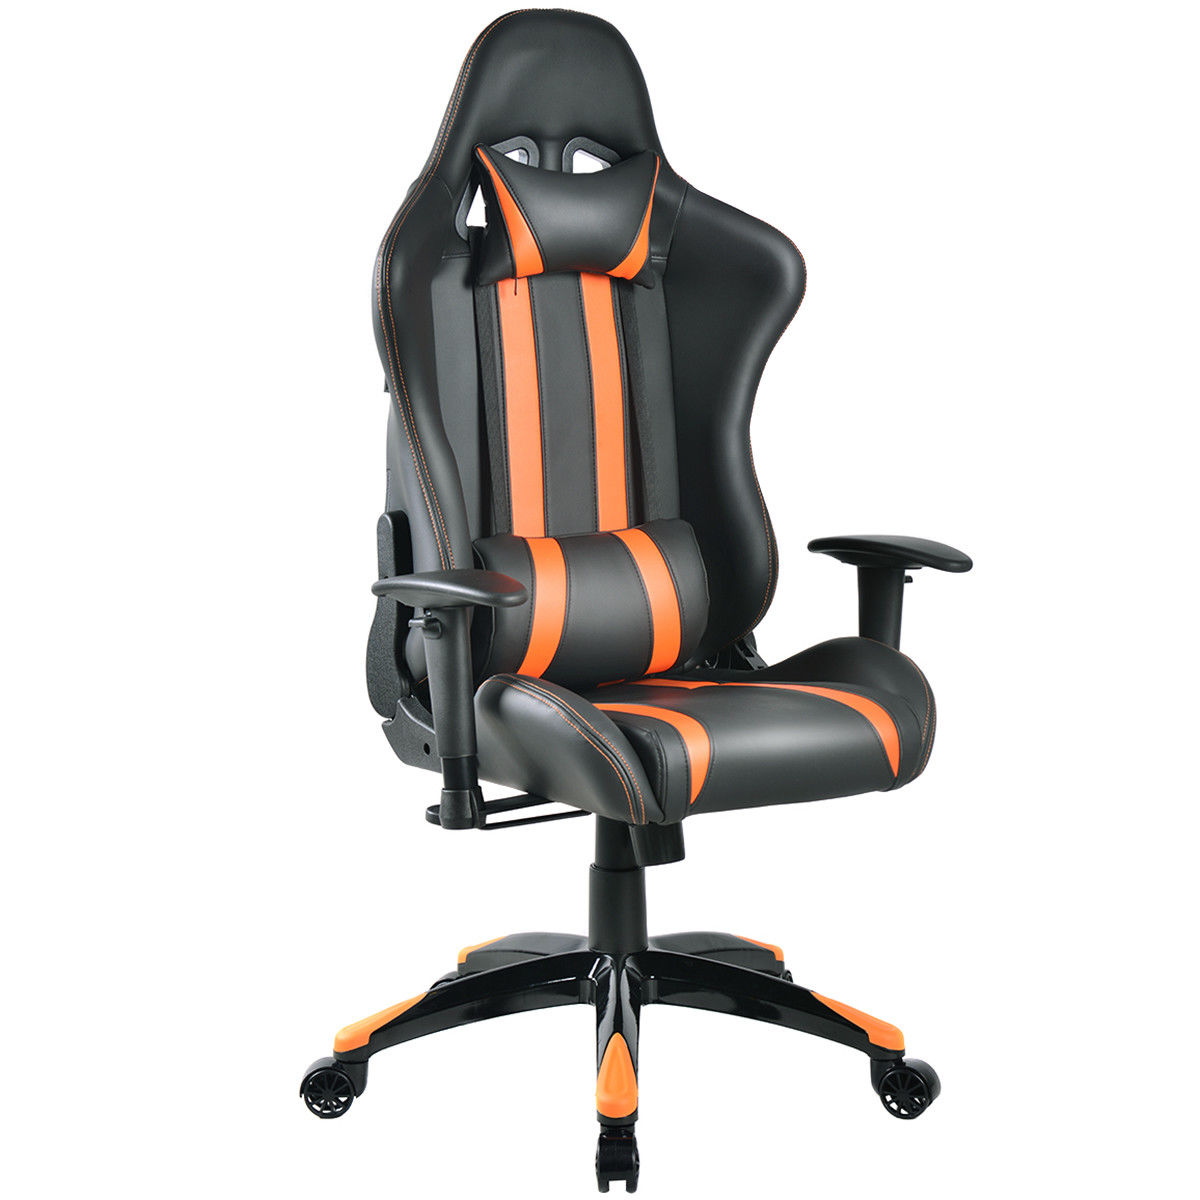 Costway Racing High Back Reclining Gaming Chair Ergonomic Computer Desk Office Chair